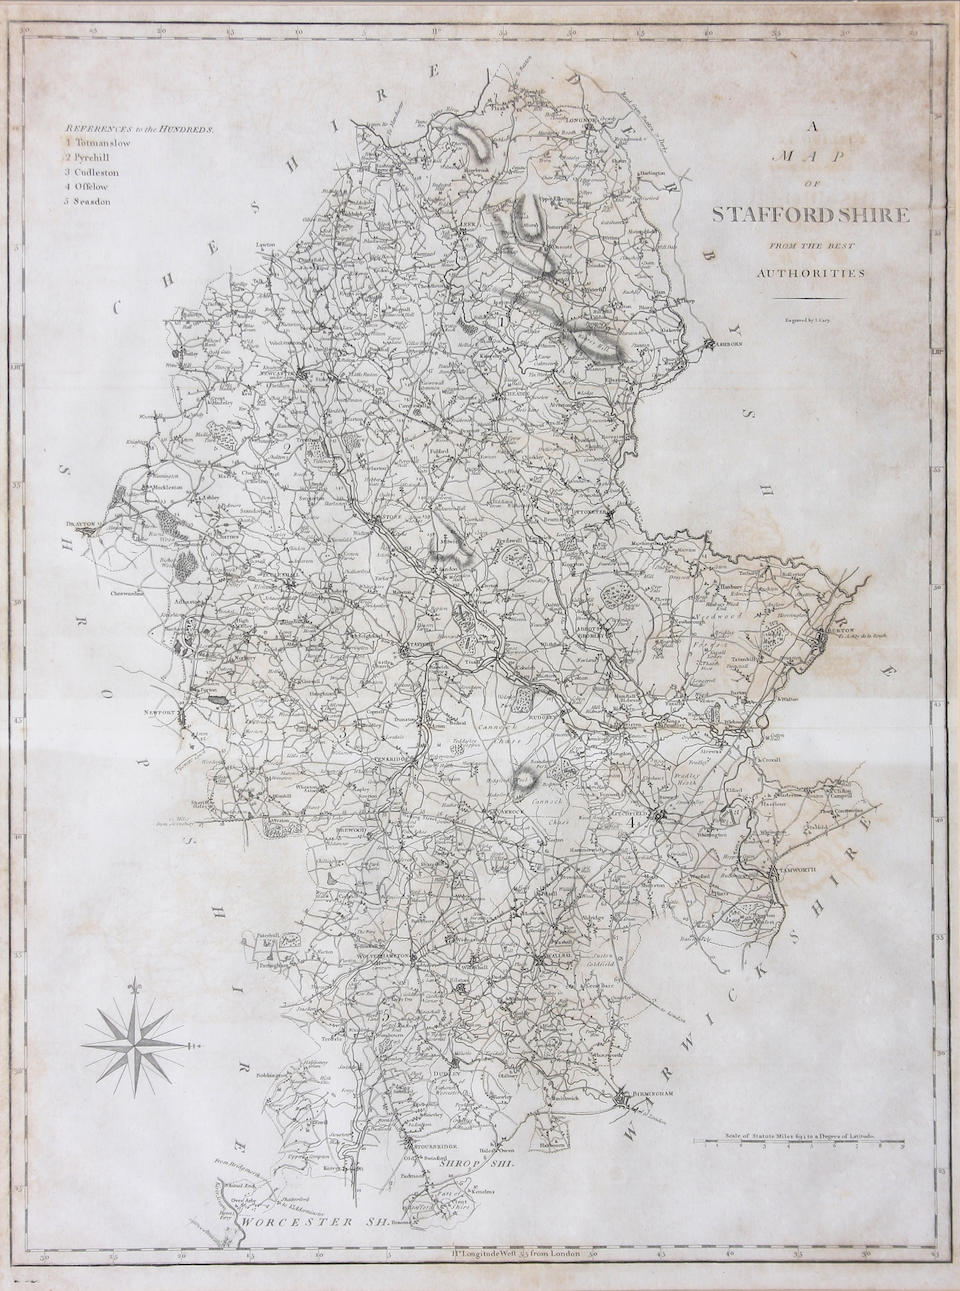 British Isles 36 x 46cm. also Cornwall and Staffordshire by Cary, and two maps of Northamptonshire by Greenwood & Co. and Teesdale